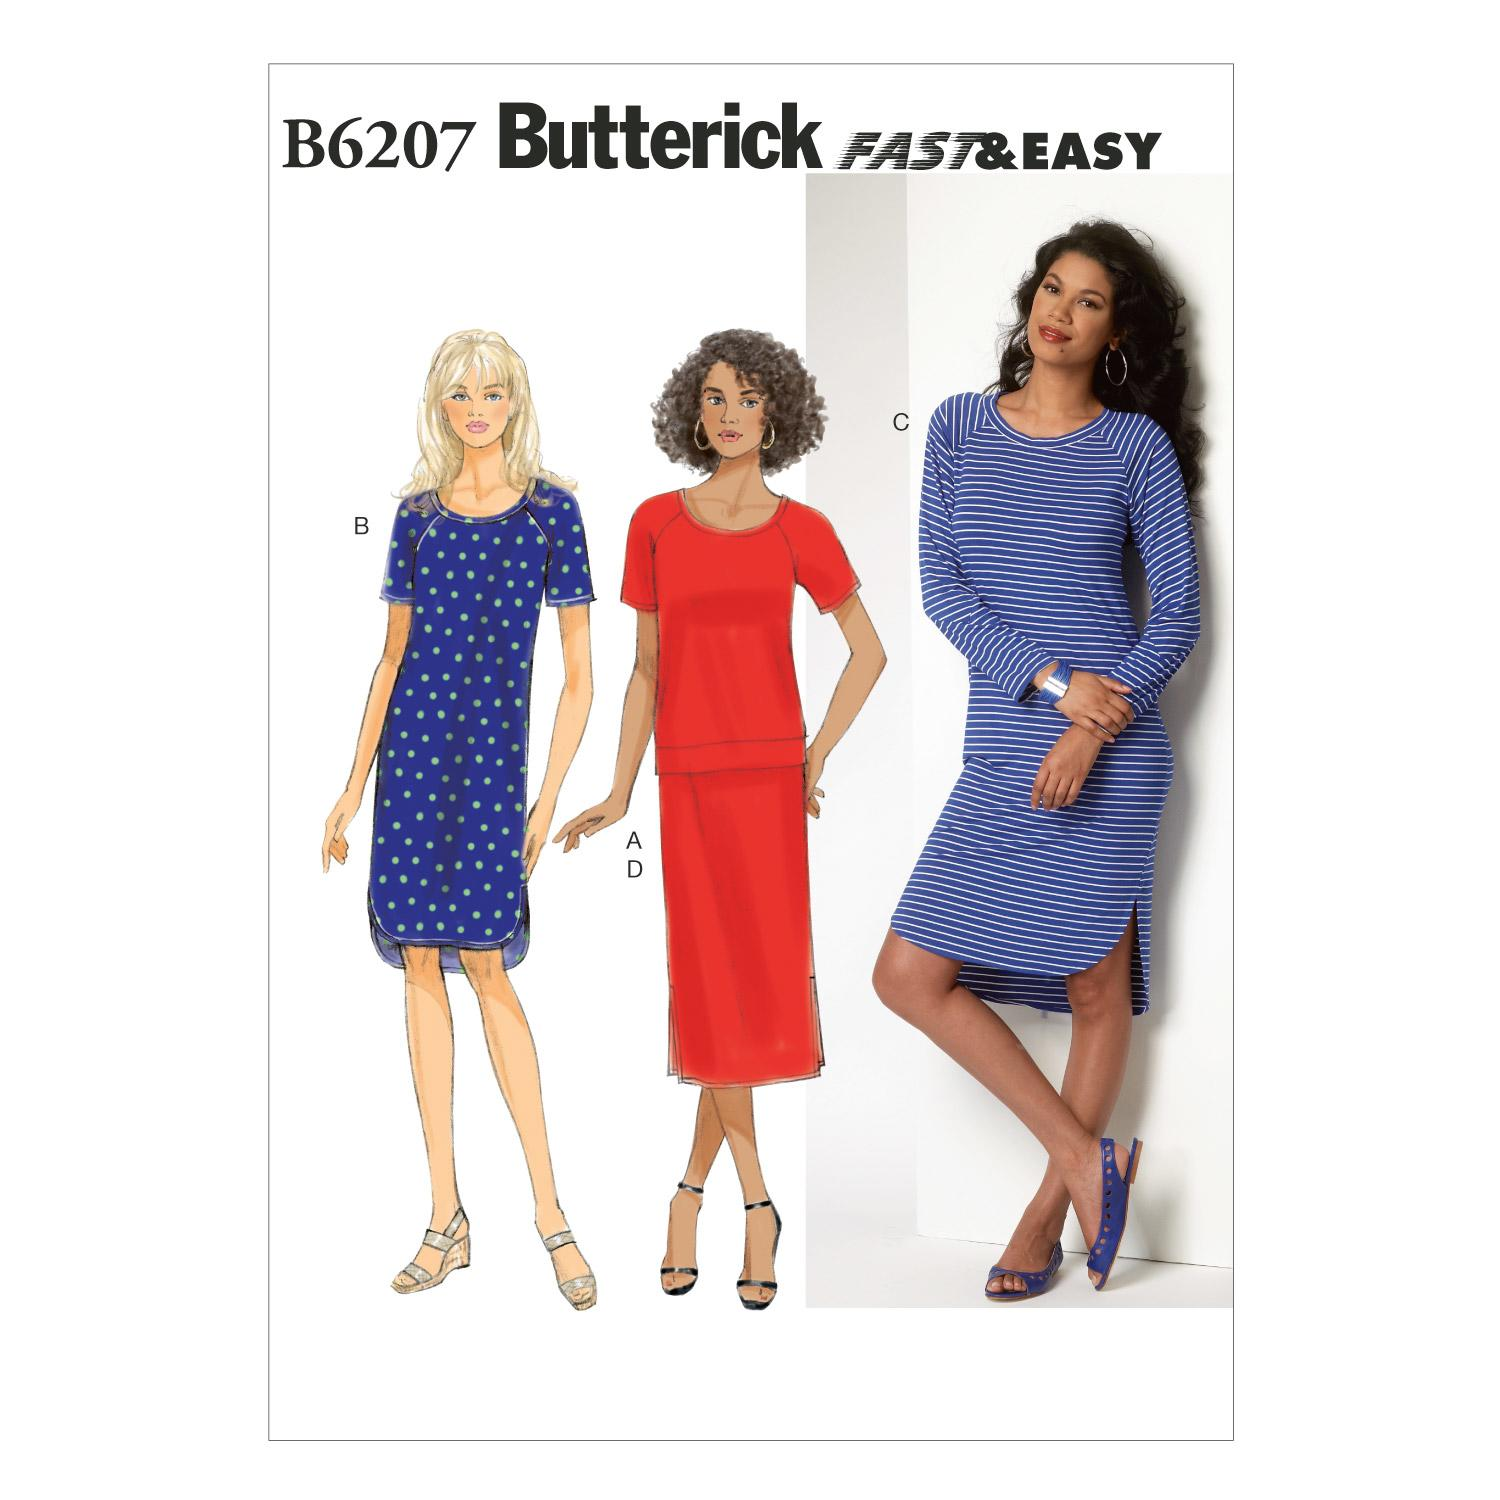 Butterick B6207 Misses' Top, Dress and Skirt